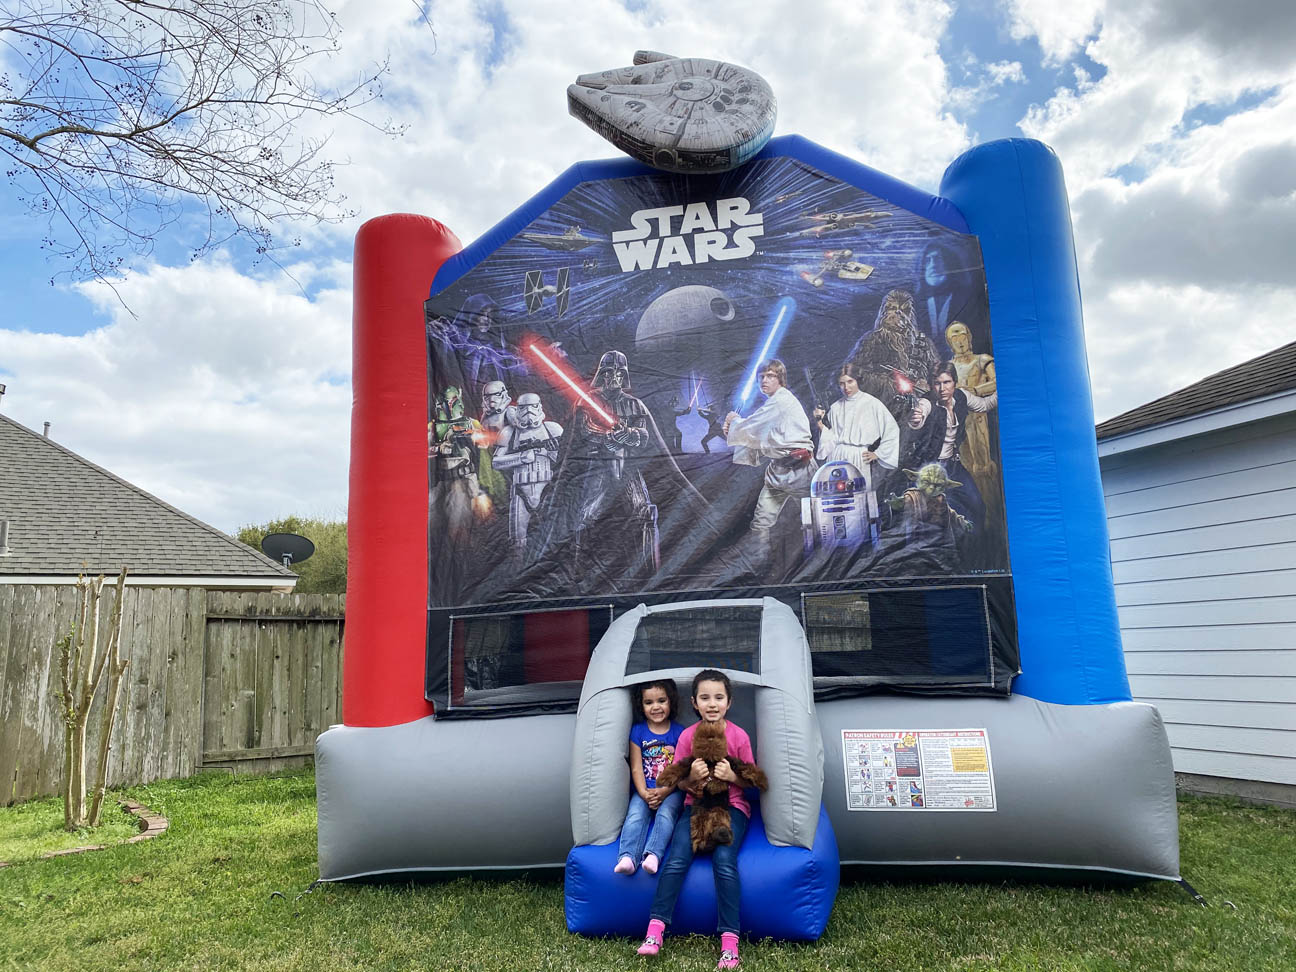 Star Wars Bouncy Castles for Hire